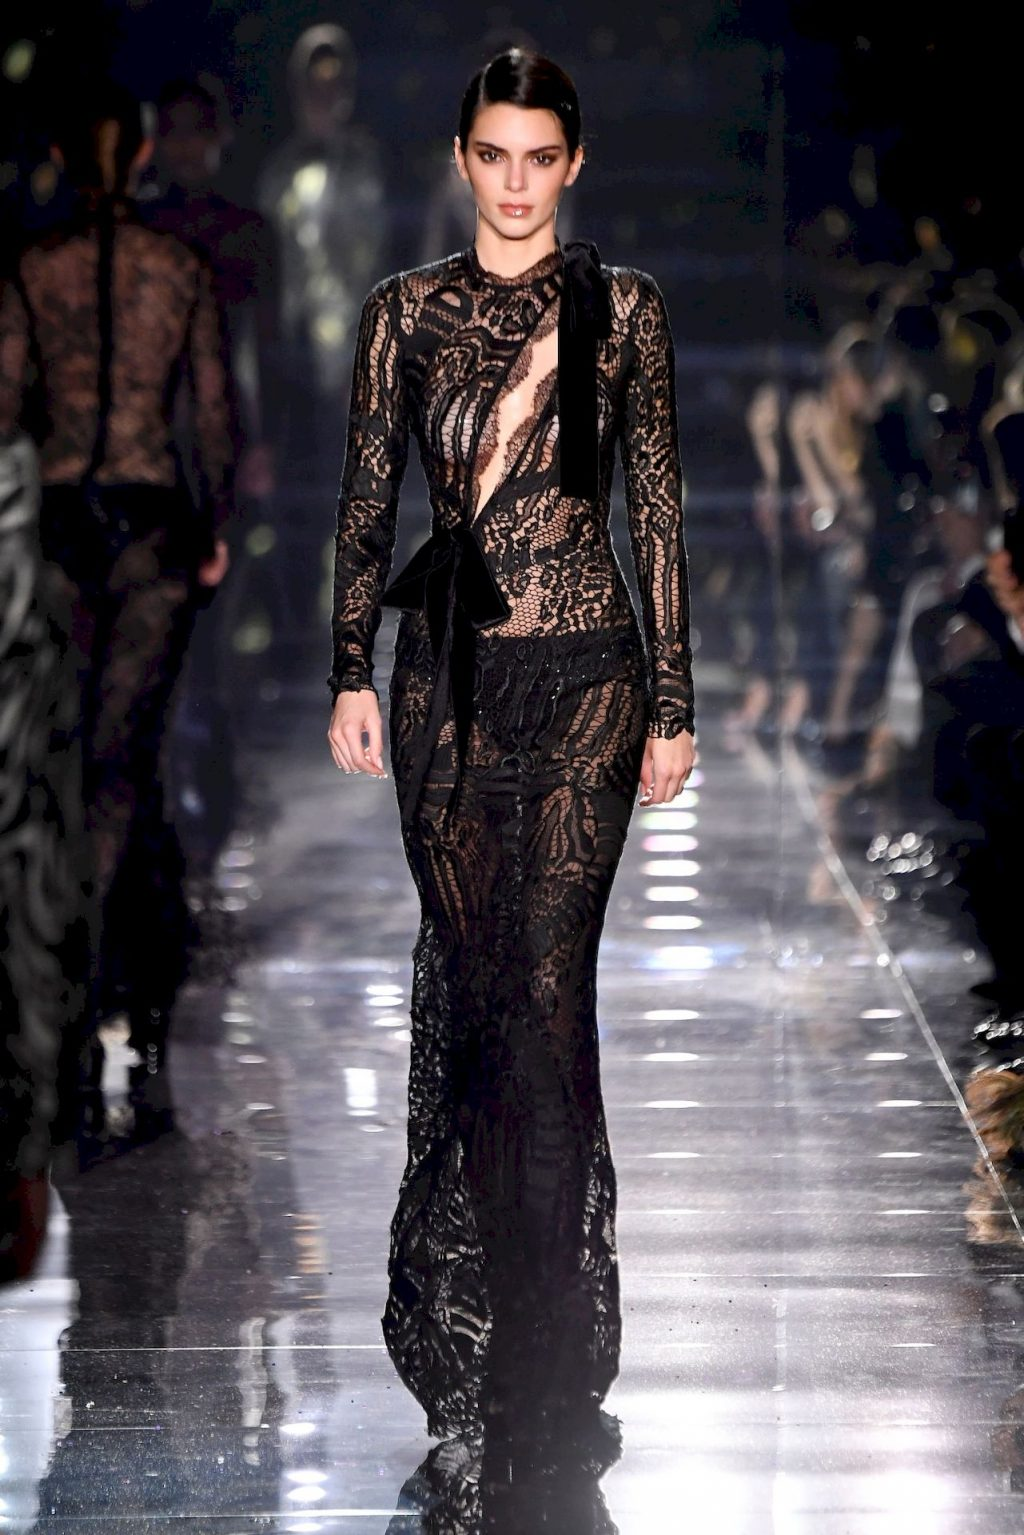 Kendall Jenner Walks the Runway During the Tom Ford Show (13 Photos + Video)